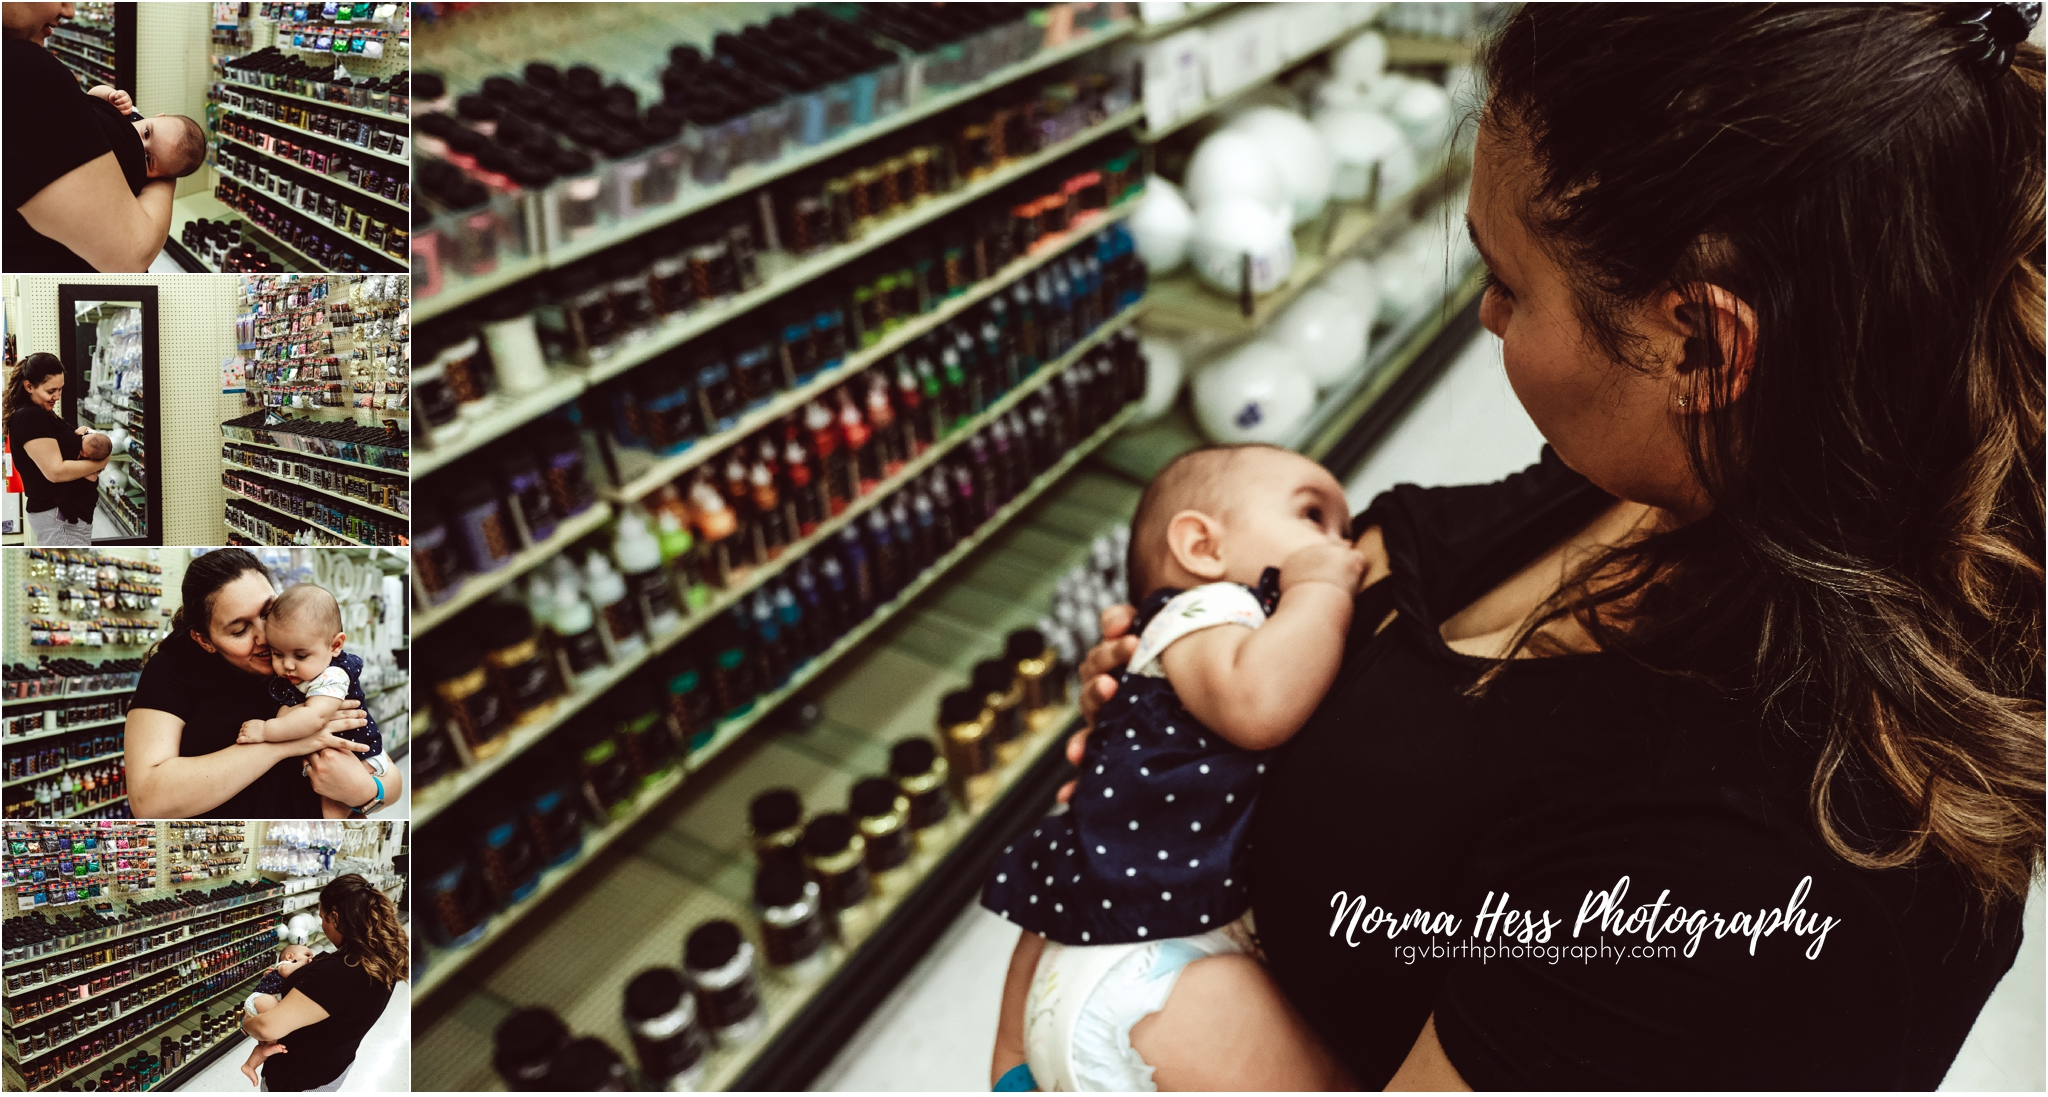 Visiting the craft store and breastfeeding on the go. rgvbirthphotography.com